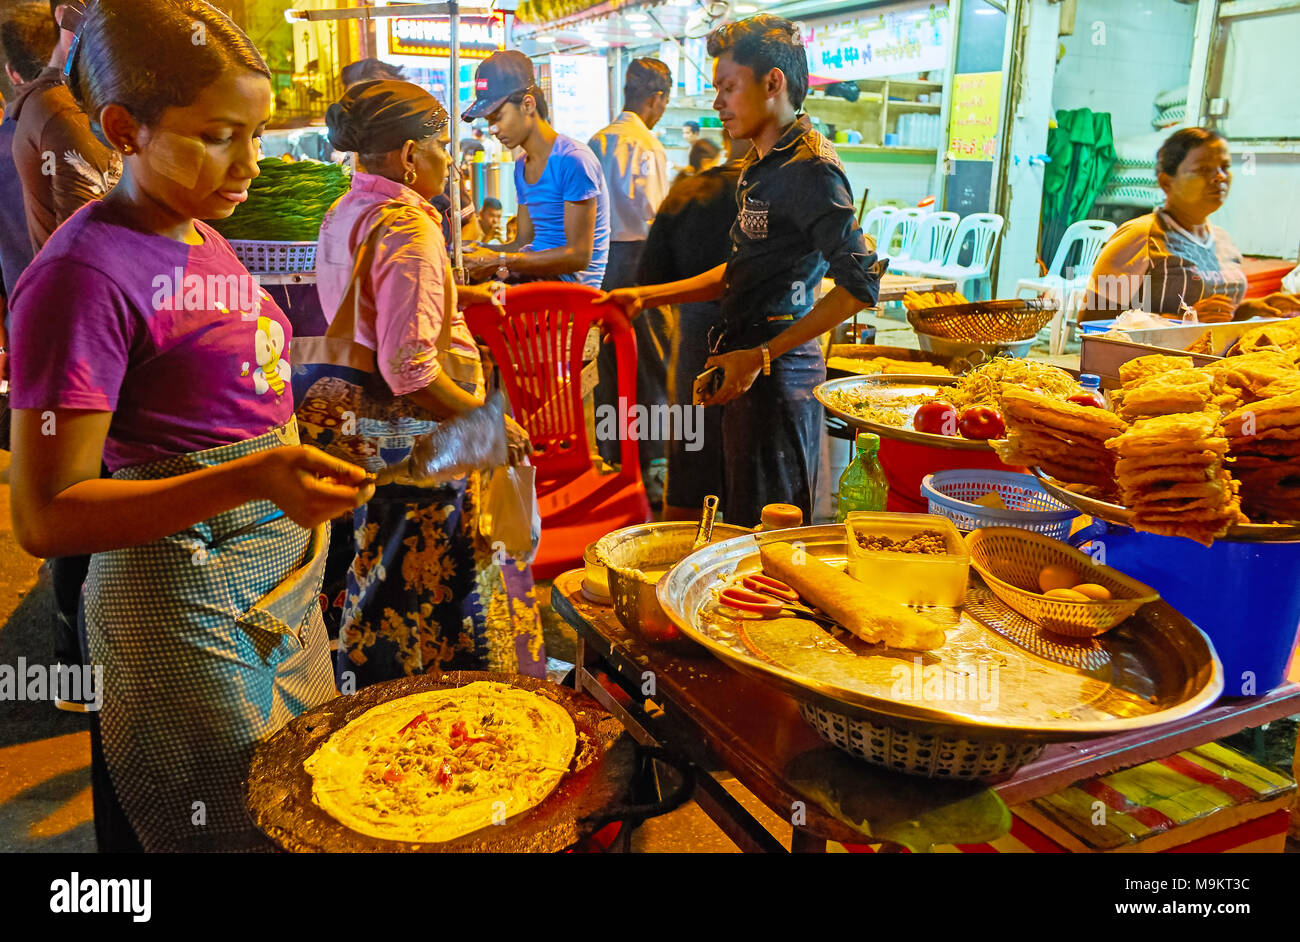 YANGON, MYANMAR - FEBRUARY 14, 2018: Young girl cooks traditional Burmese street food - pancakes with vegetables and chickpeas, crispy fried pies, Mah - Stock Image